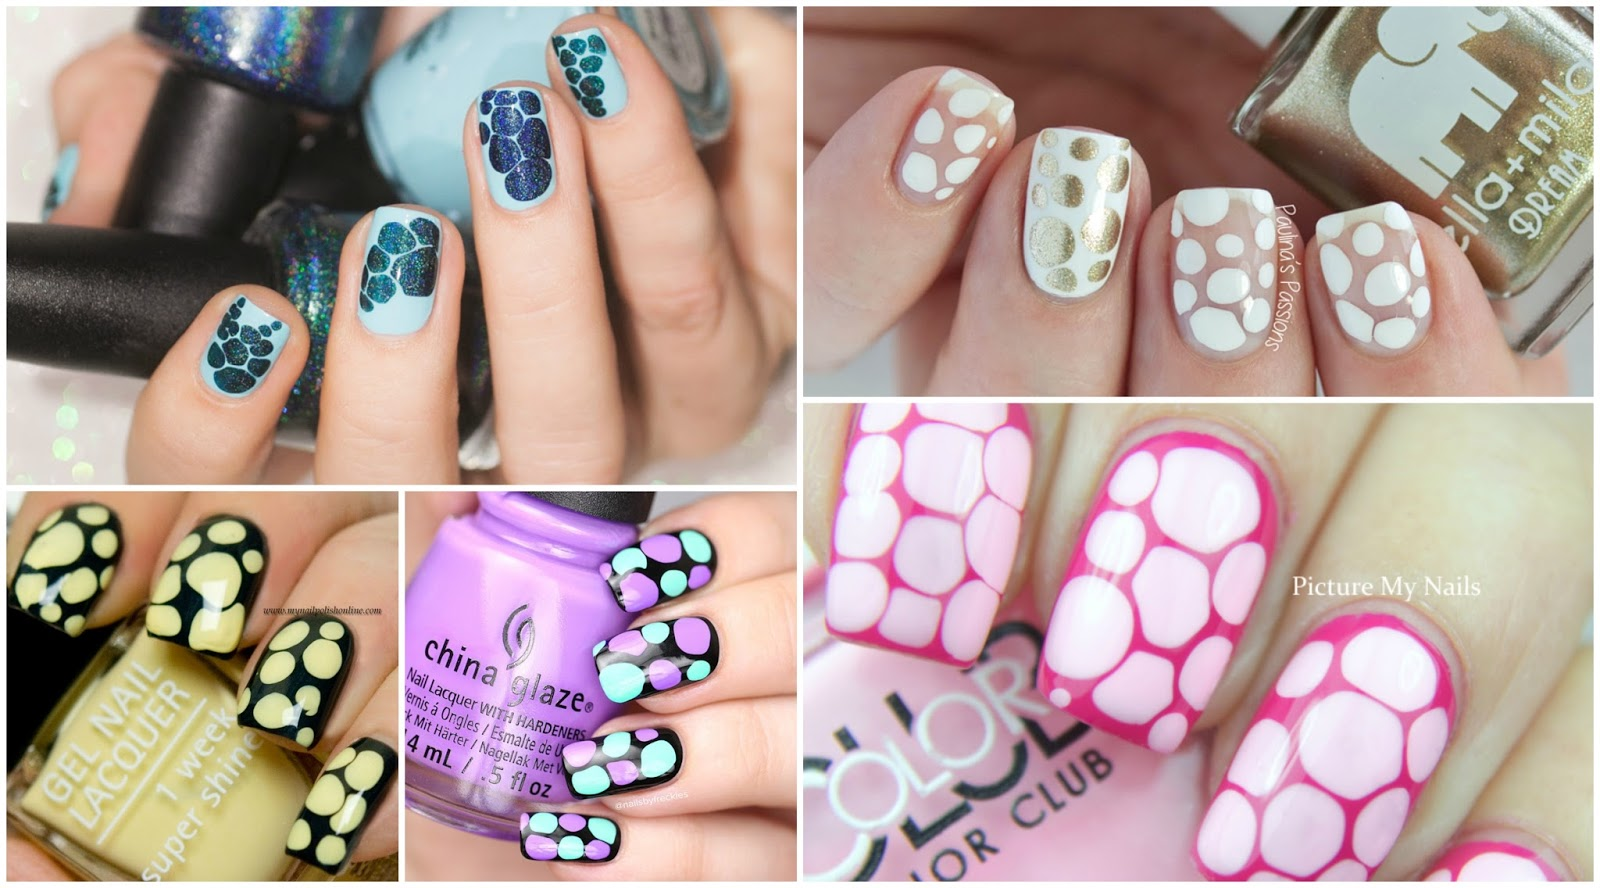 Blobbicure: The hot new nail art trend